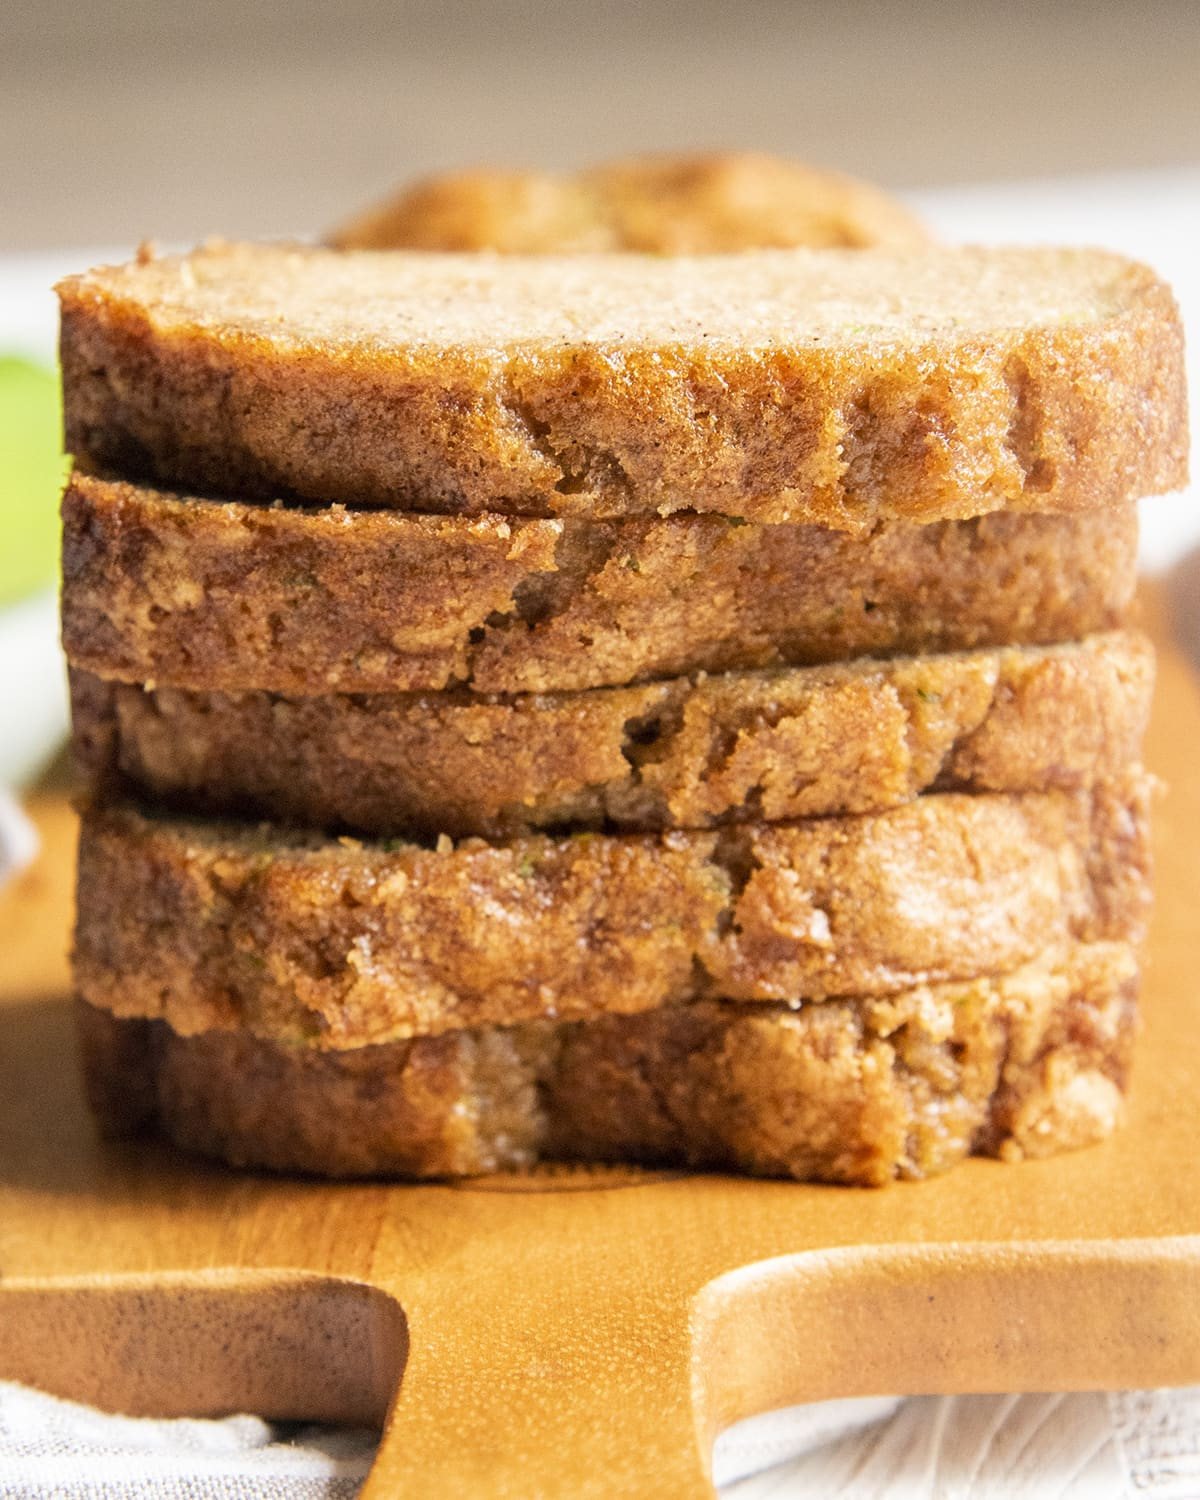 A stack of 5 slices of zucchini bread on top of each other.